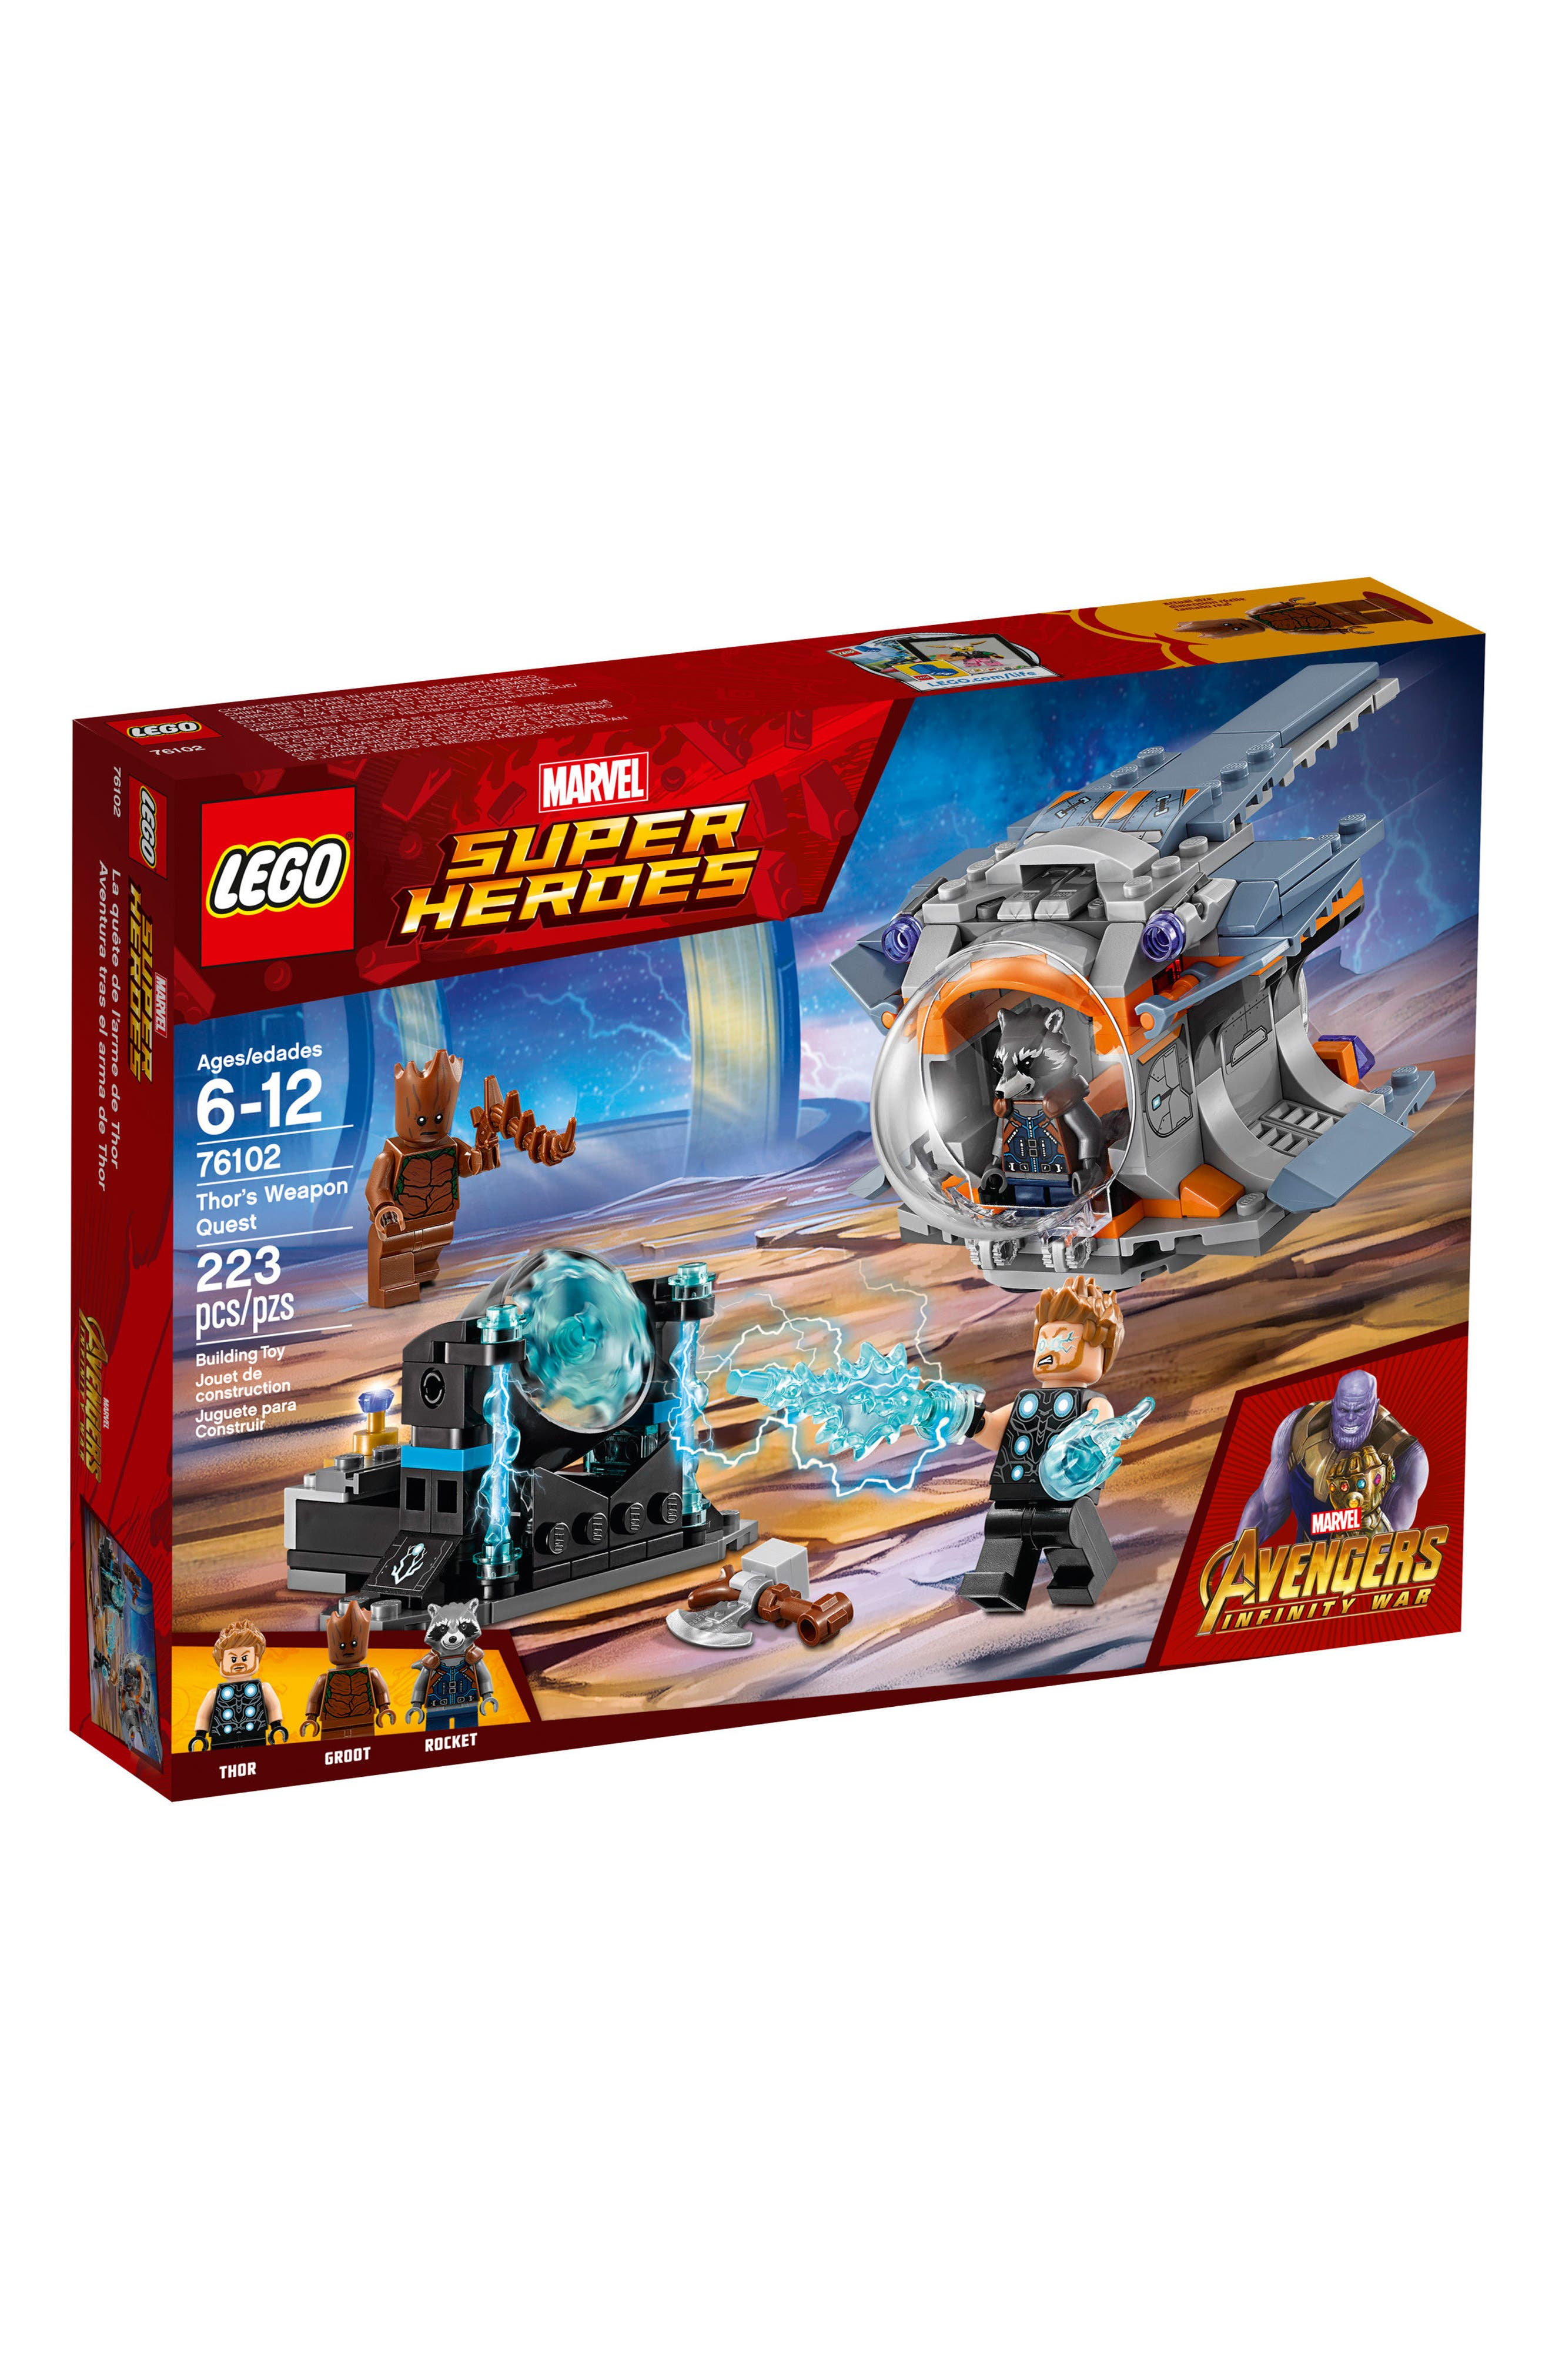 Marvel<sup>®</sup> Super Heroes Thor's Weapon Quest<sup>™</sup> - 76102,                             Main thumbnail 1, color,                             MULTI